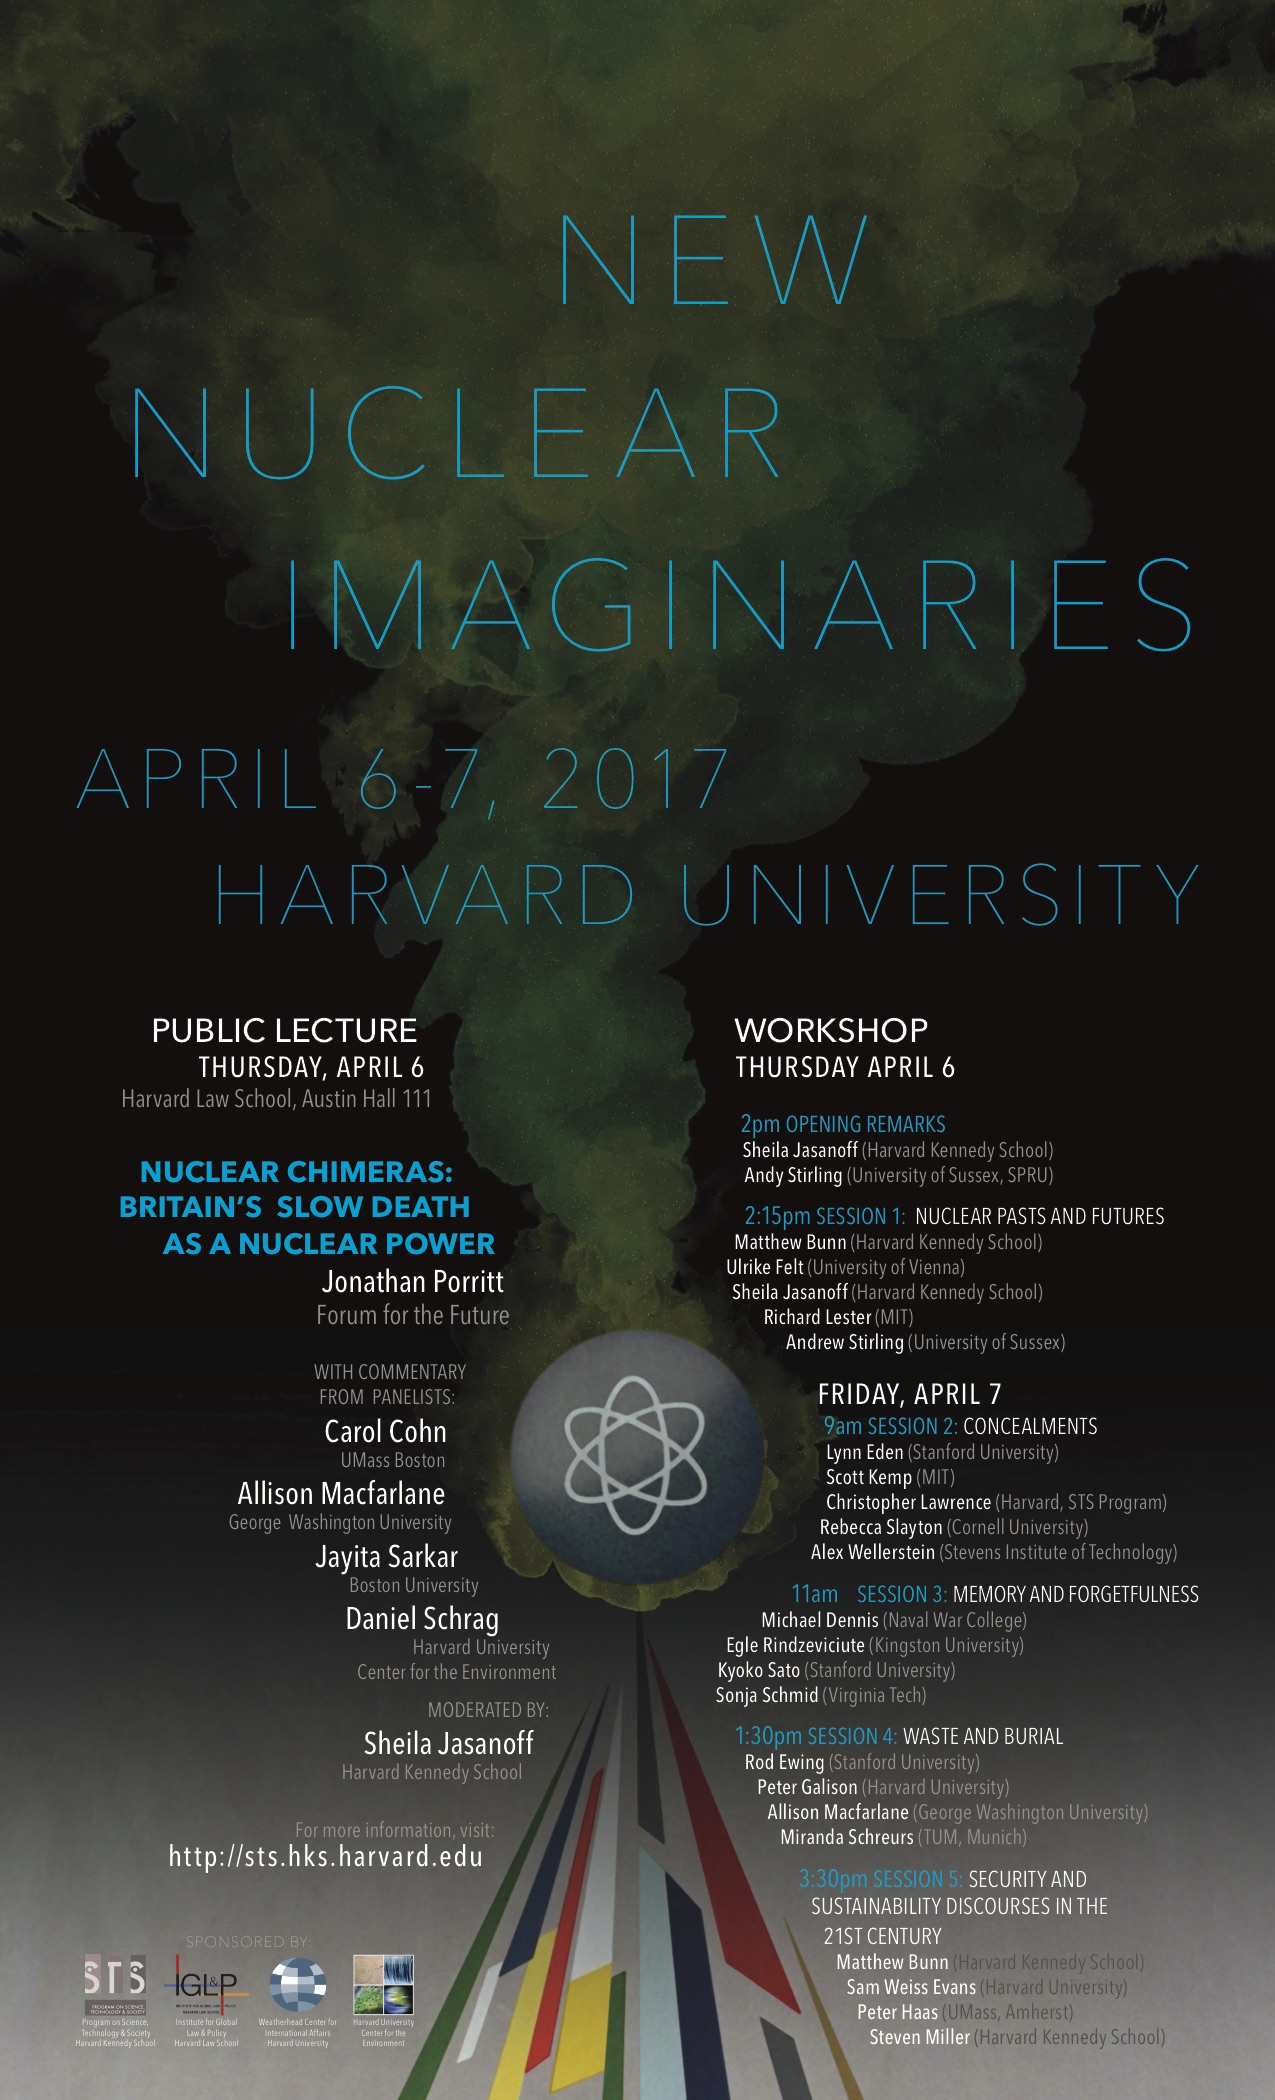 New Nuclear Imaginaries event poster